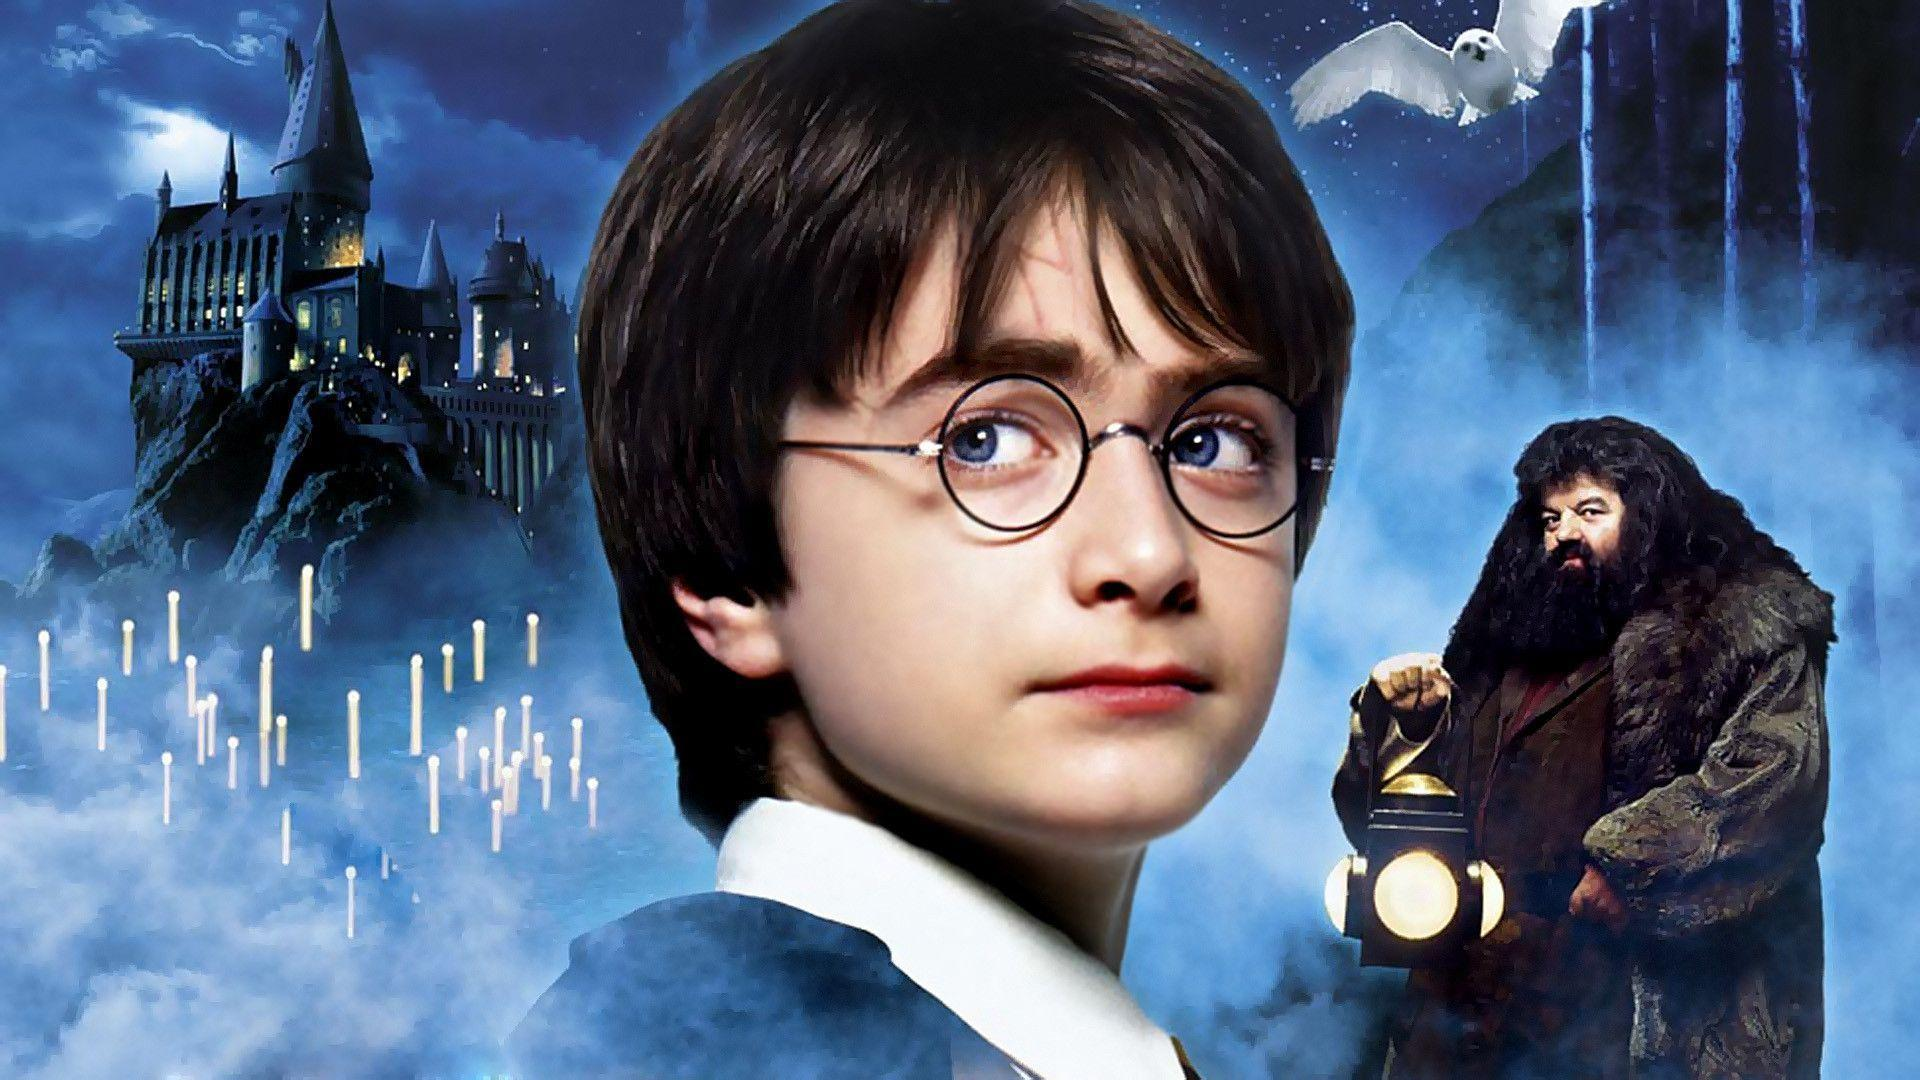 Harry potter wallpapers wallpaper cave harry potter hd wallpapers free download hd free wallpapers download voltagebd Image collections